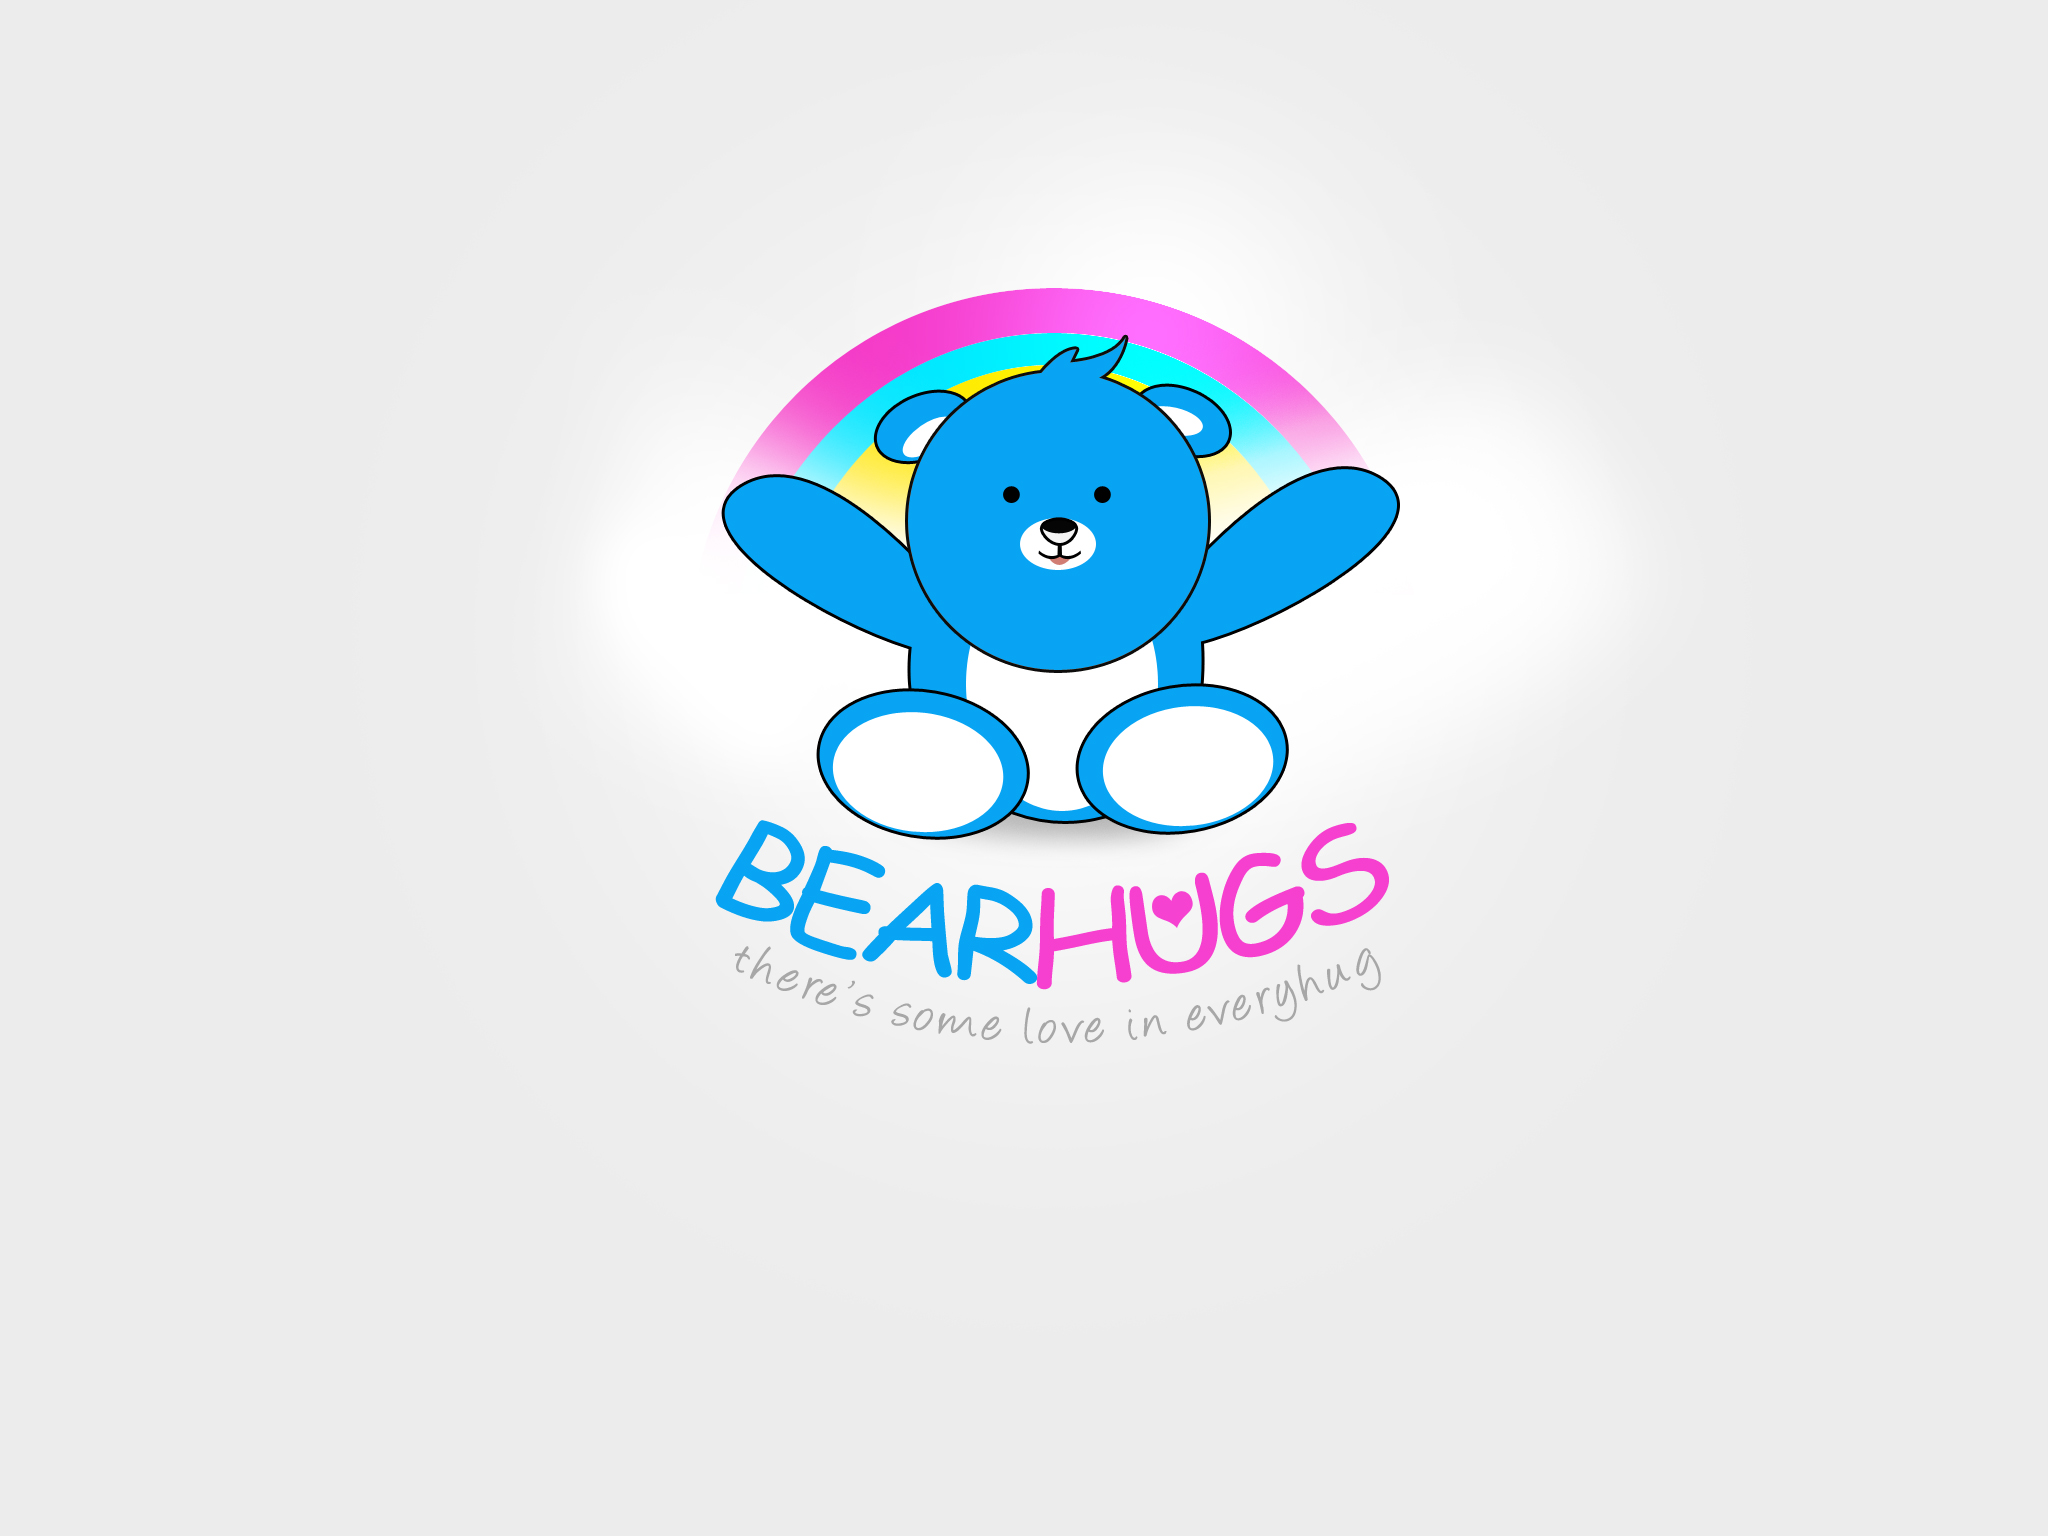 Logo Design by Jan Chua - Entry No. 29 in the Logo Design Contest Inspiring Logo Design for BearHugs.